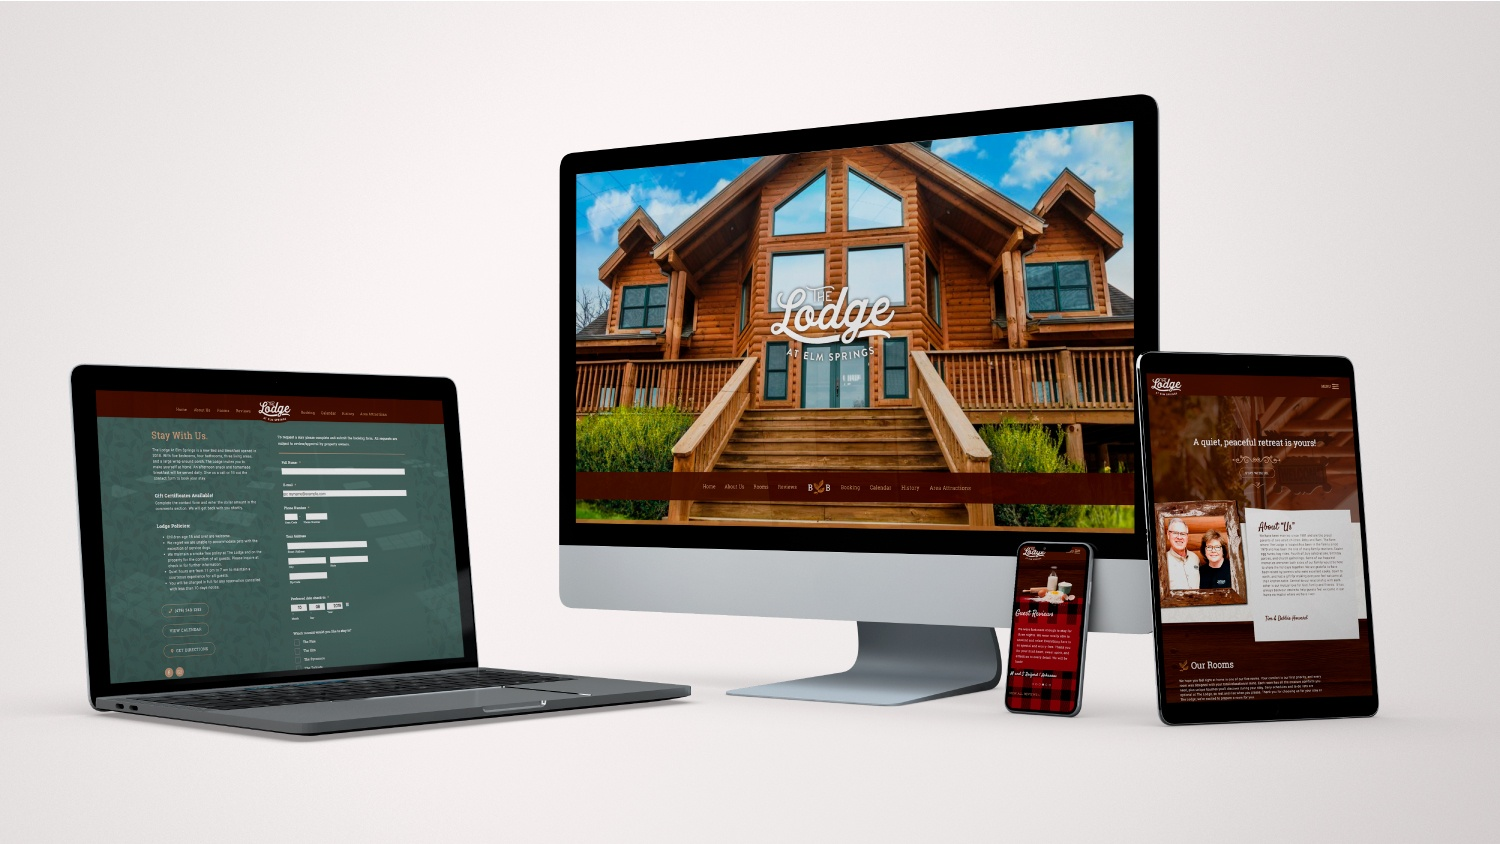 Lodge at Elm Springs website mockup